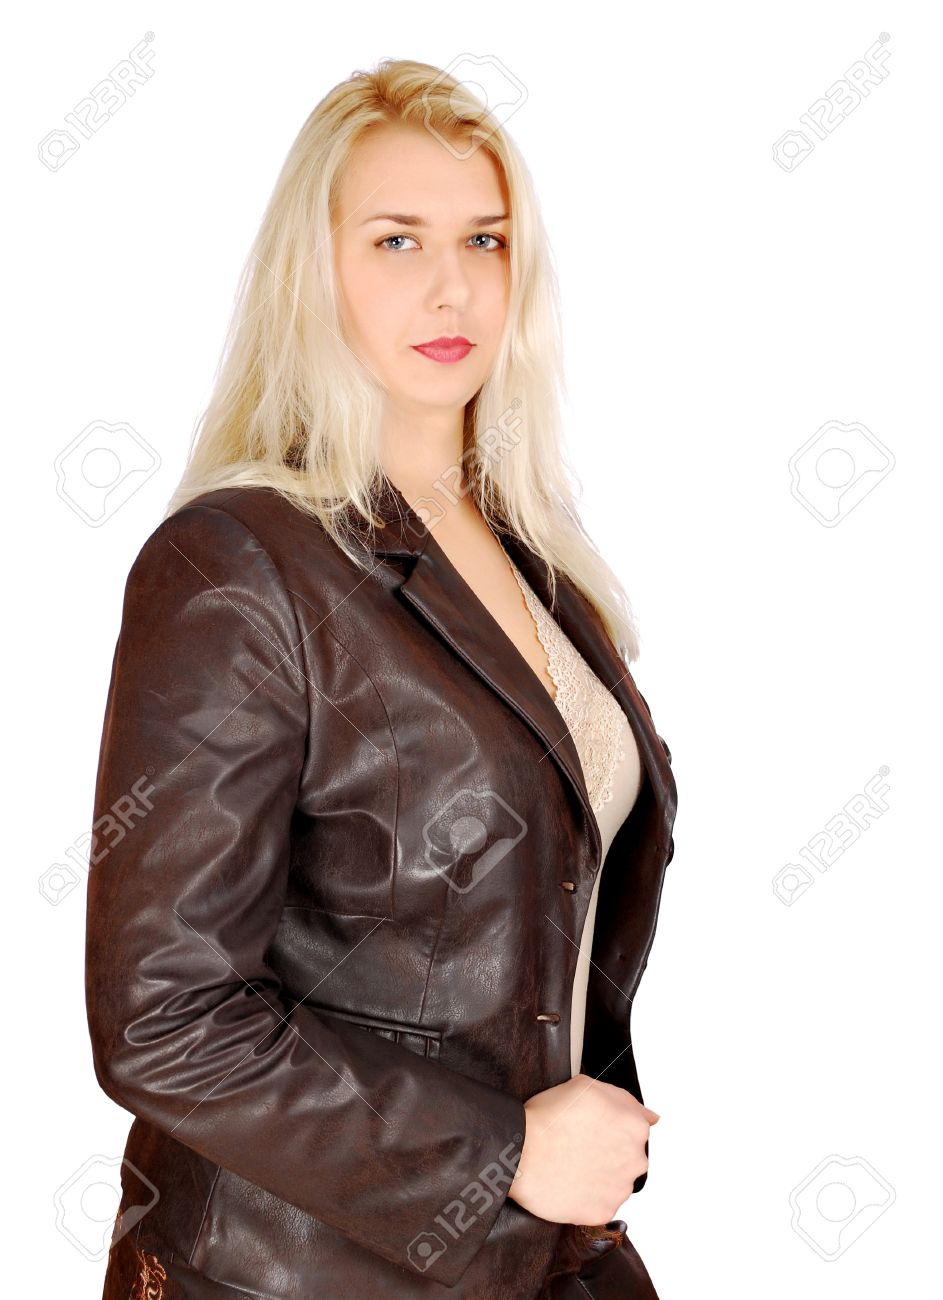 Blonde Woman In Leather Jacket Posing Stock Photo Picture And